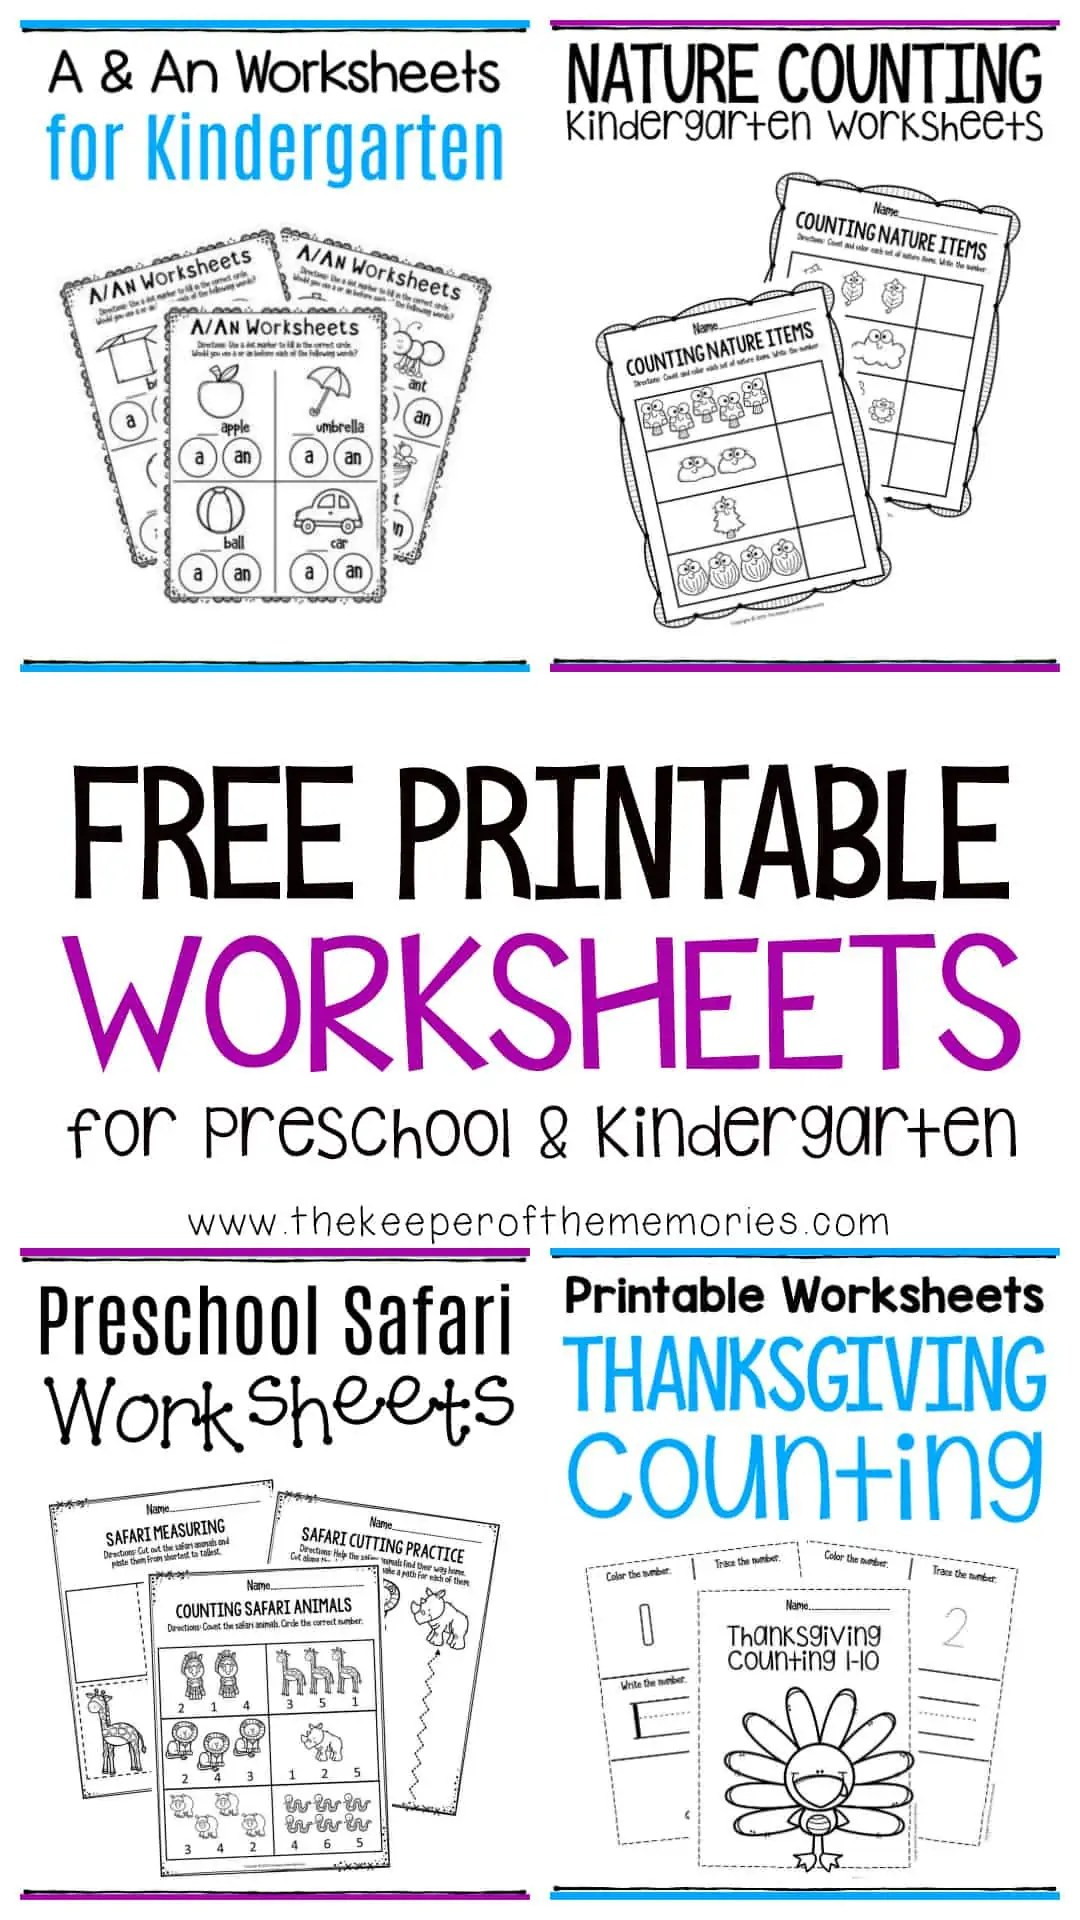 Free Printable Worksheets For Preschool Amp Kindergarten